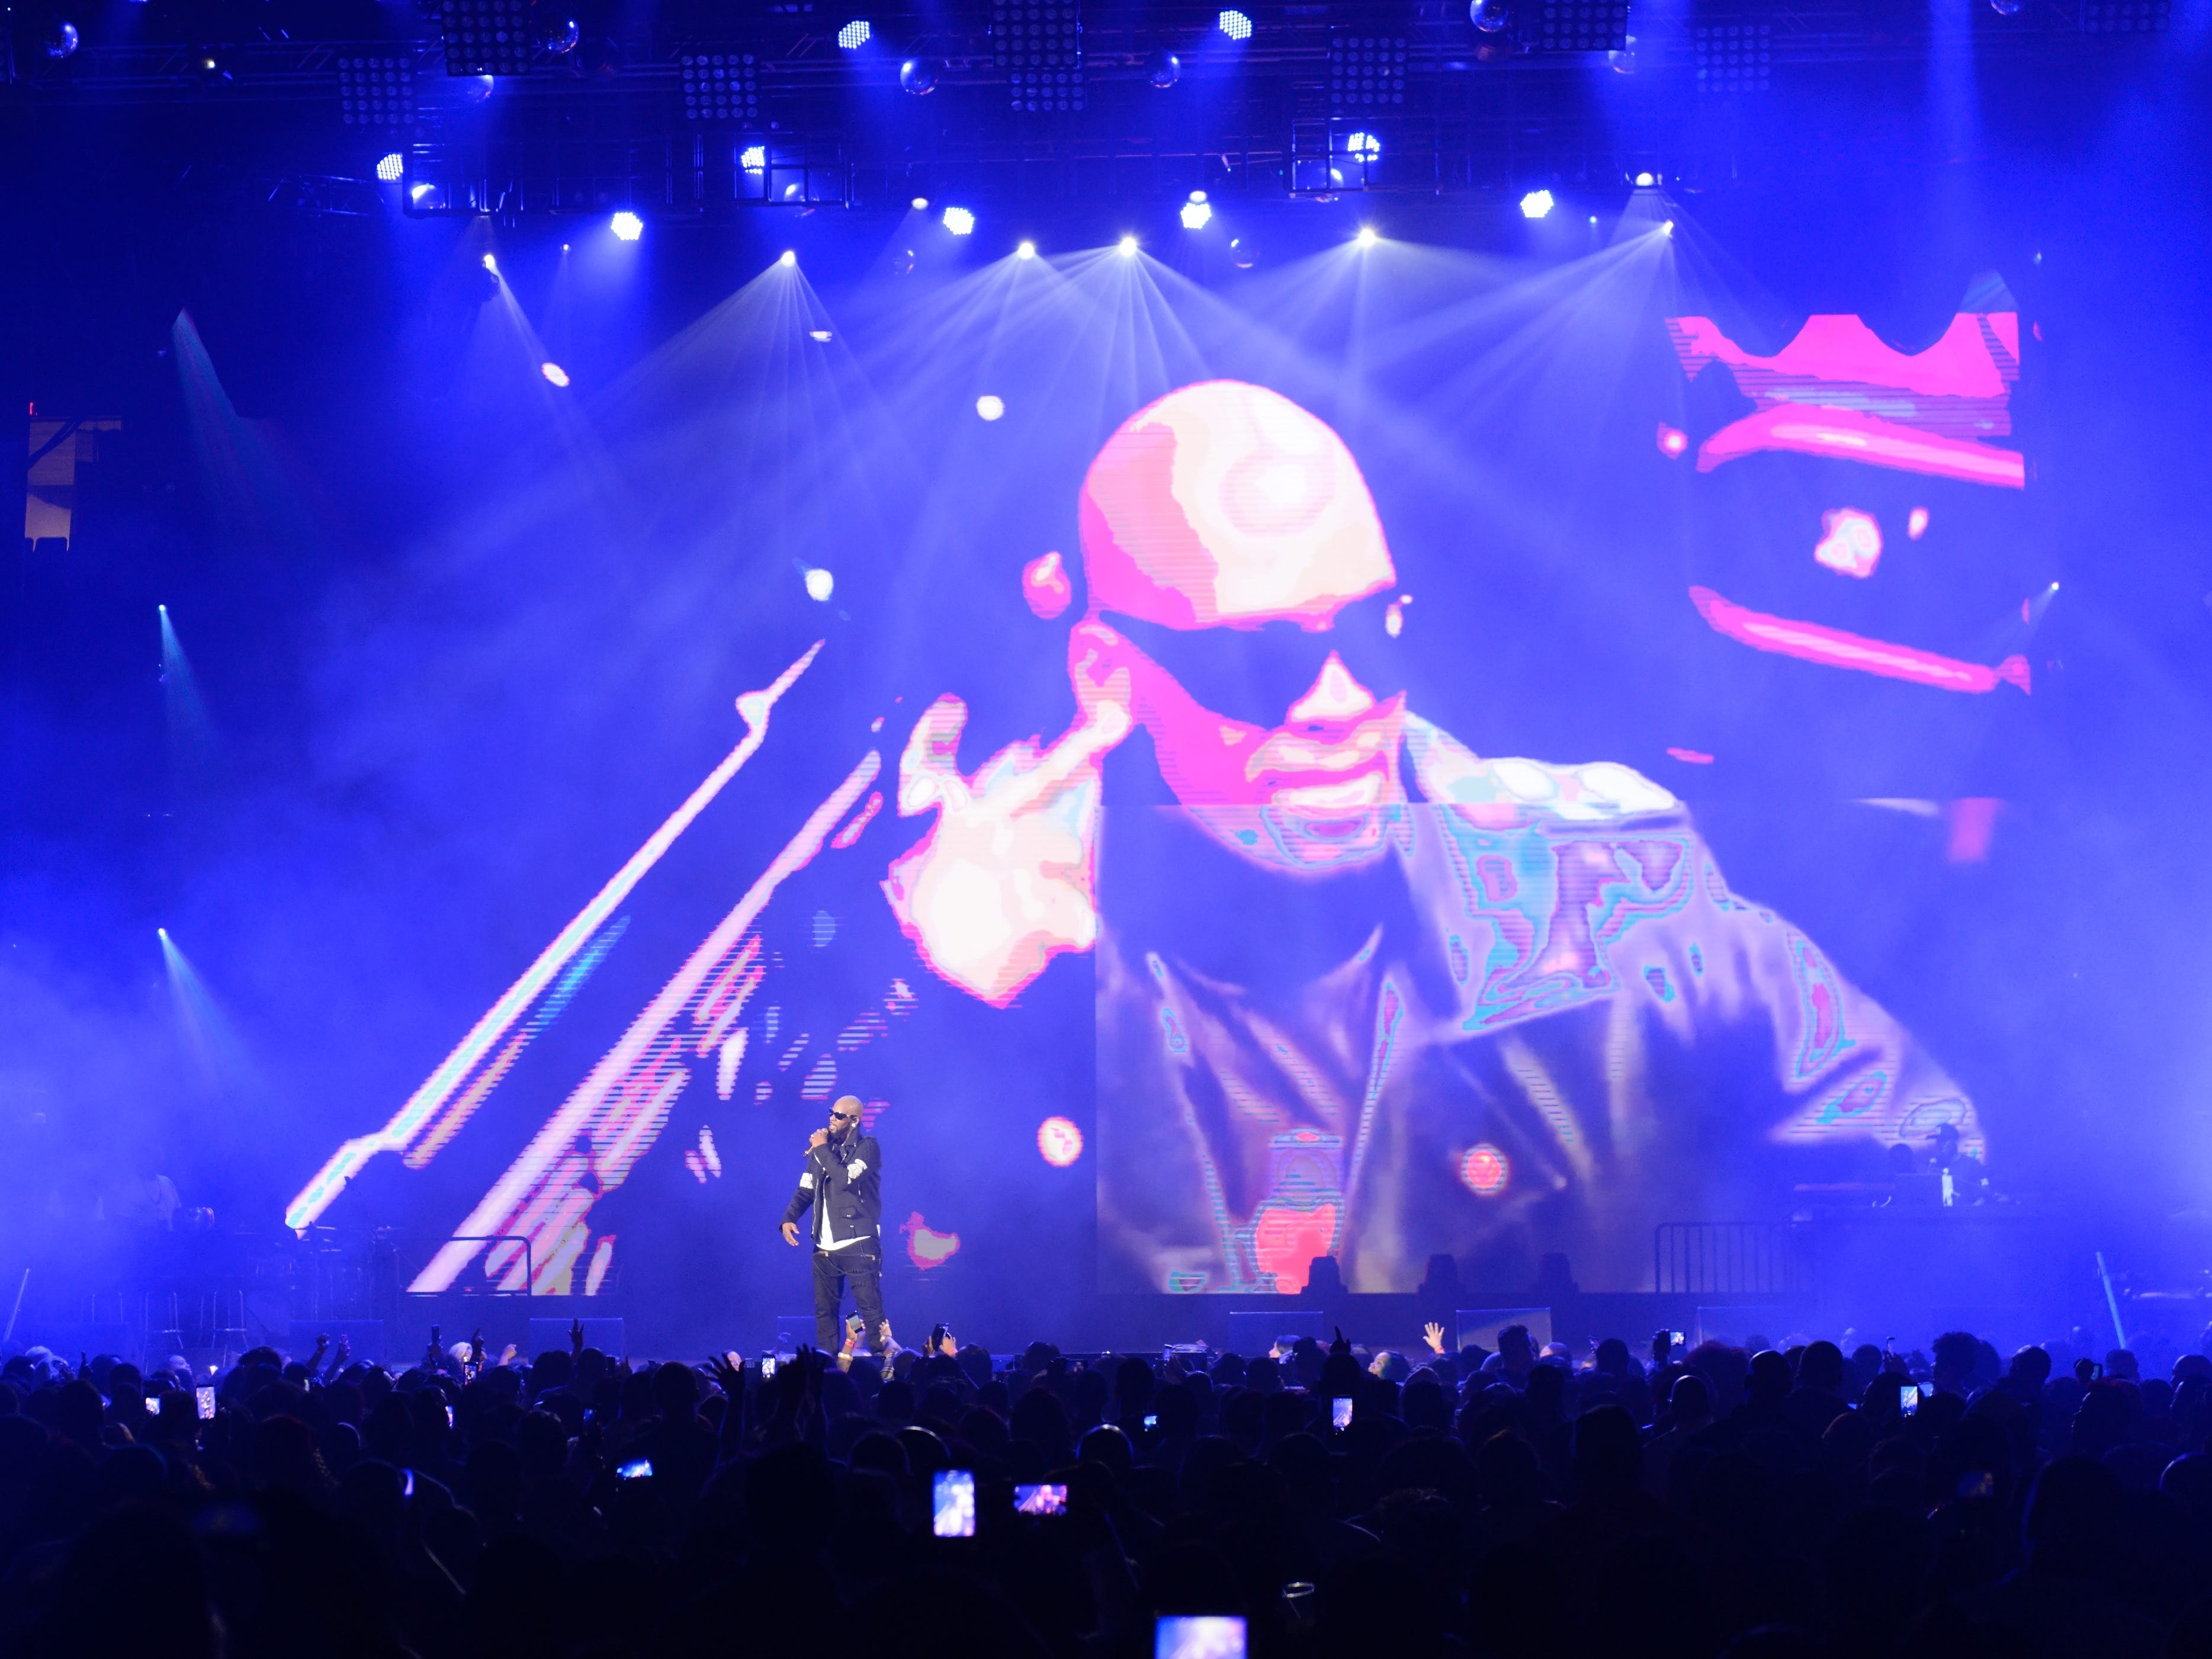 R. Kelly performs during The Buffet Tour at Allstate Arena on May 7, 2016, in Chicago.